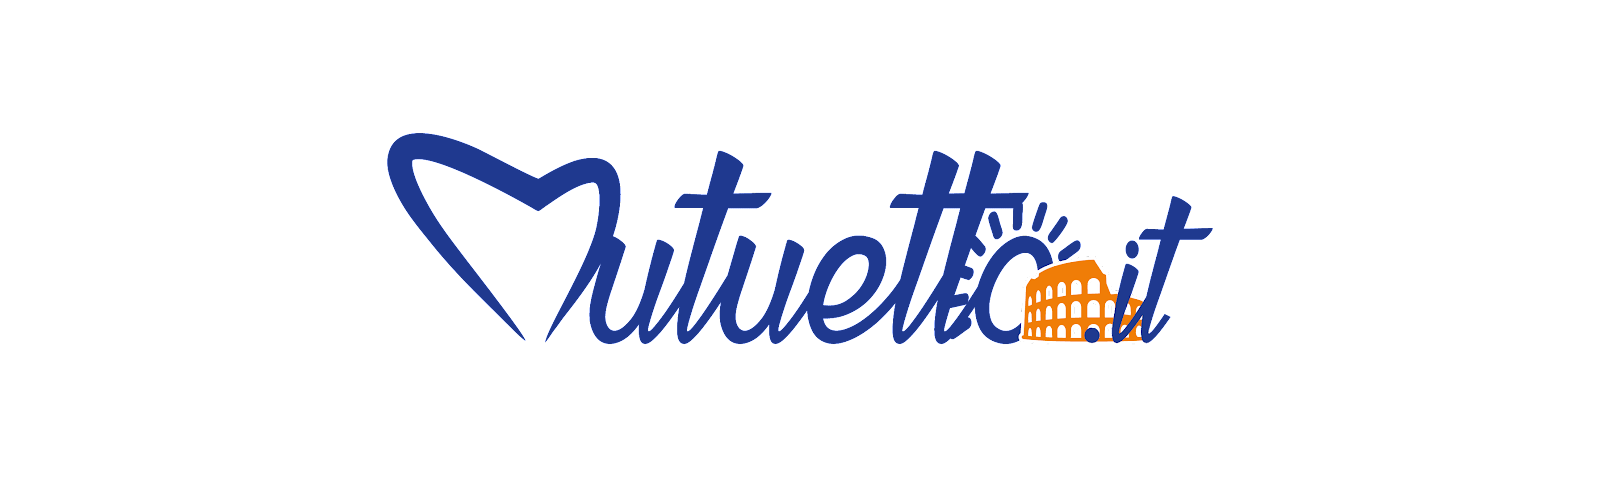 logo mutuetto 01